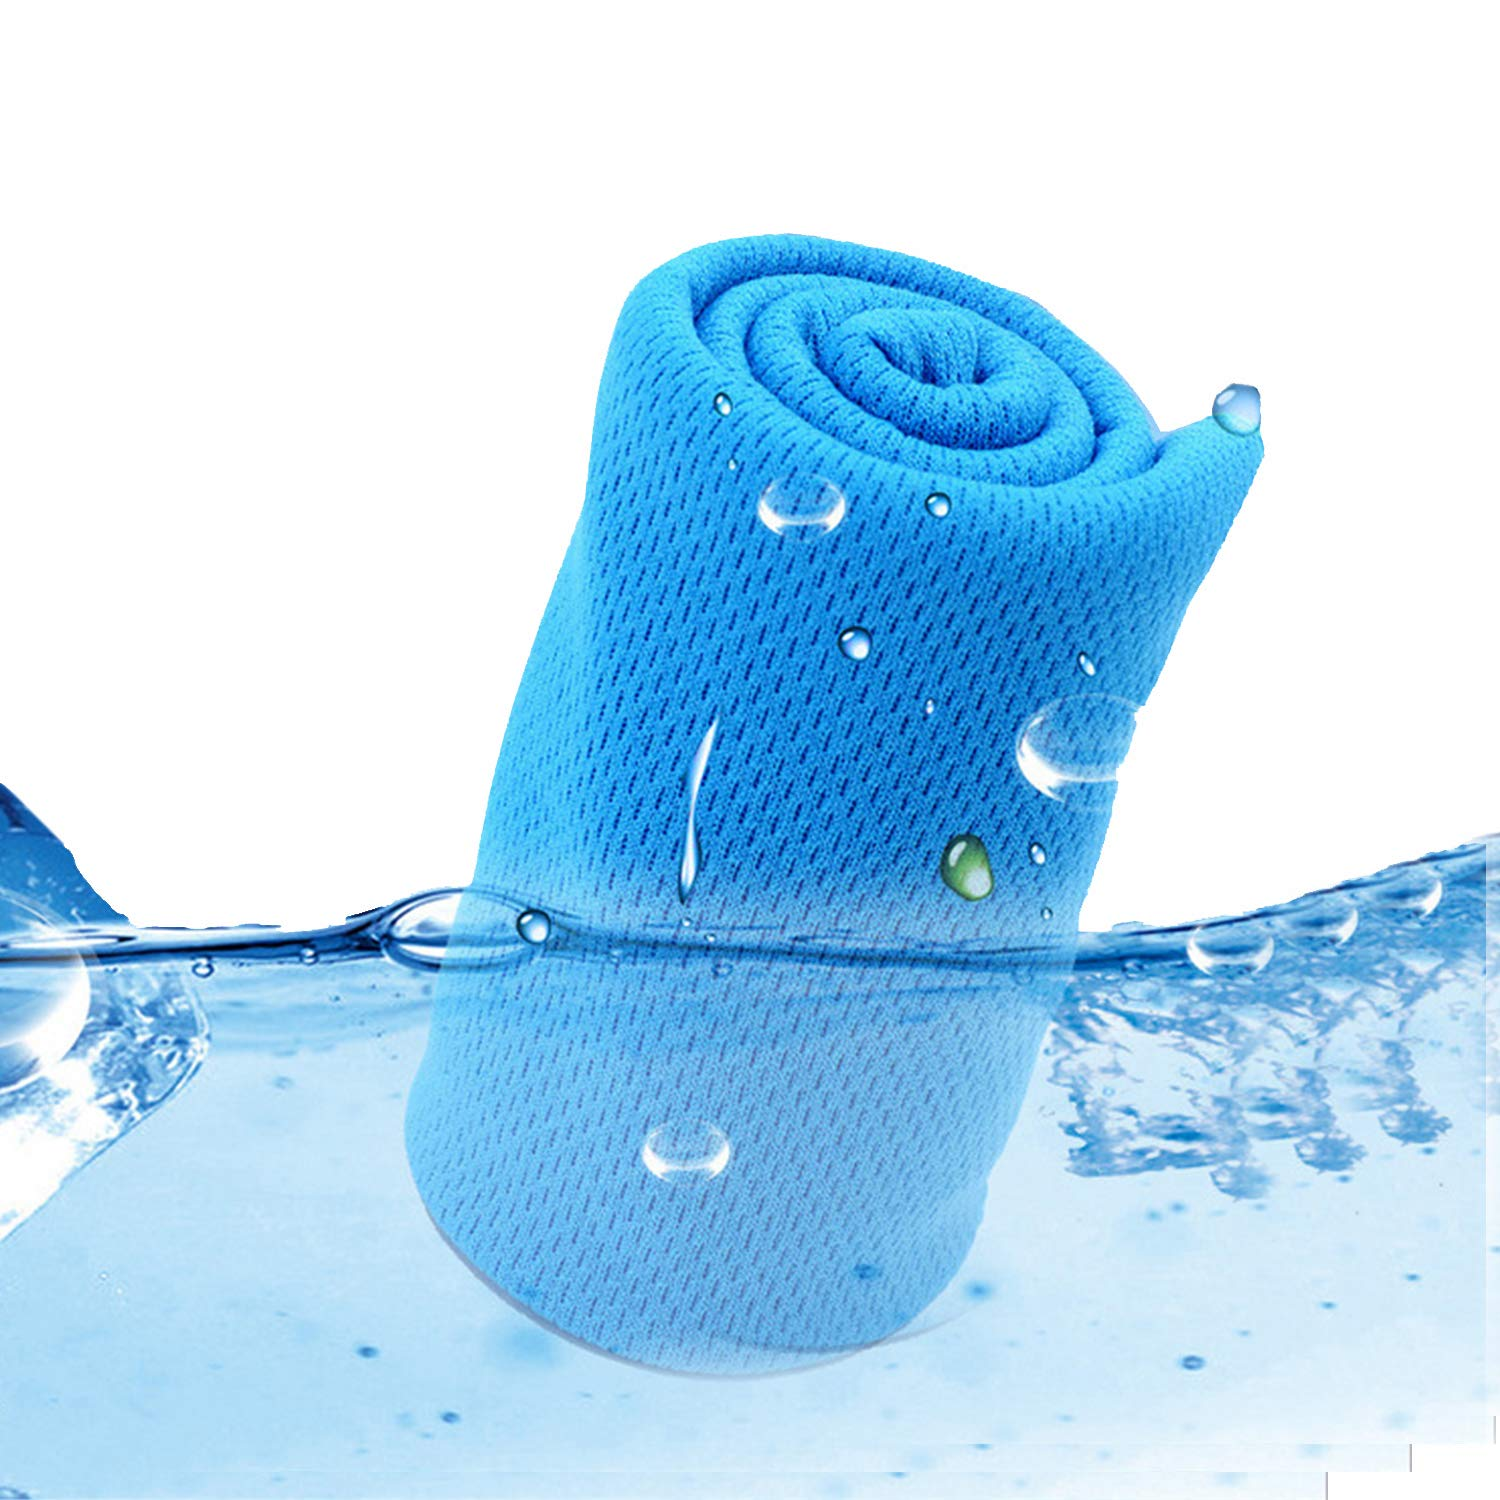 WIWISI Cooling Towels, Instant Relief ice Cold Towels for Yoga, Gym, Camping, Fitness, Workout, Sports, Travel